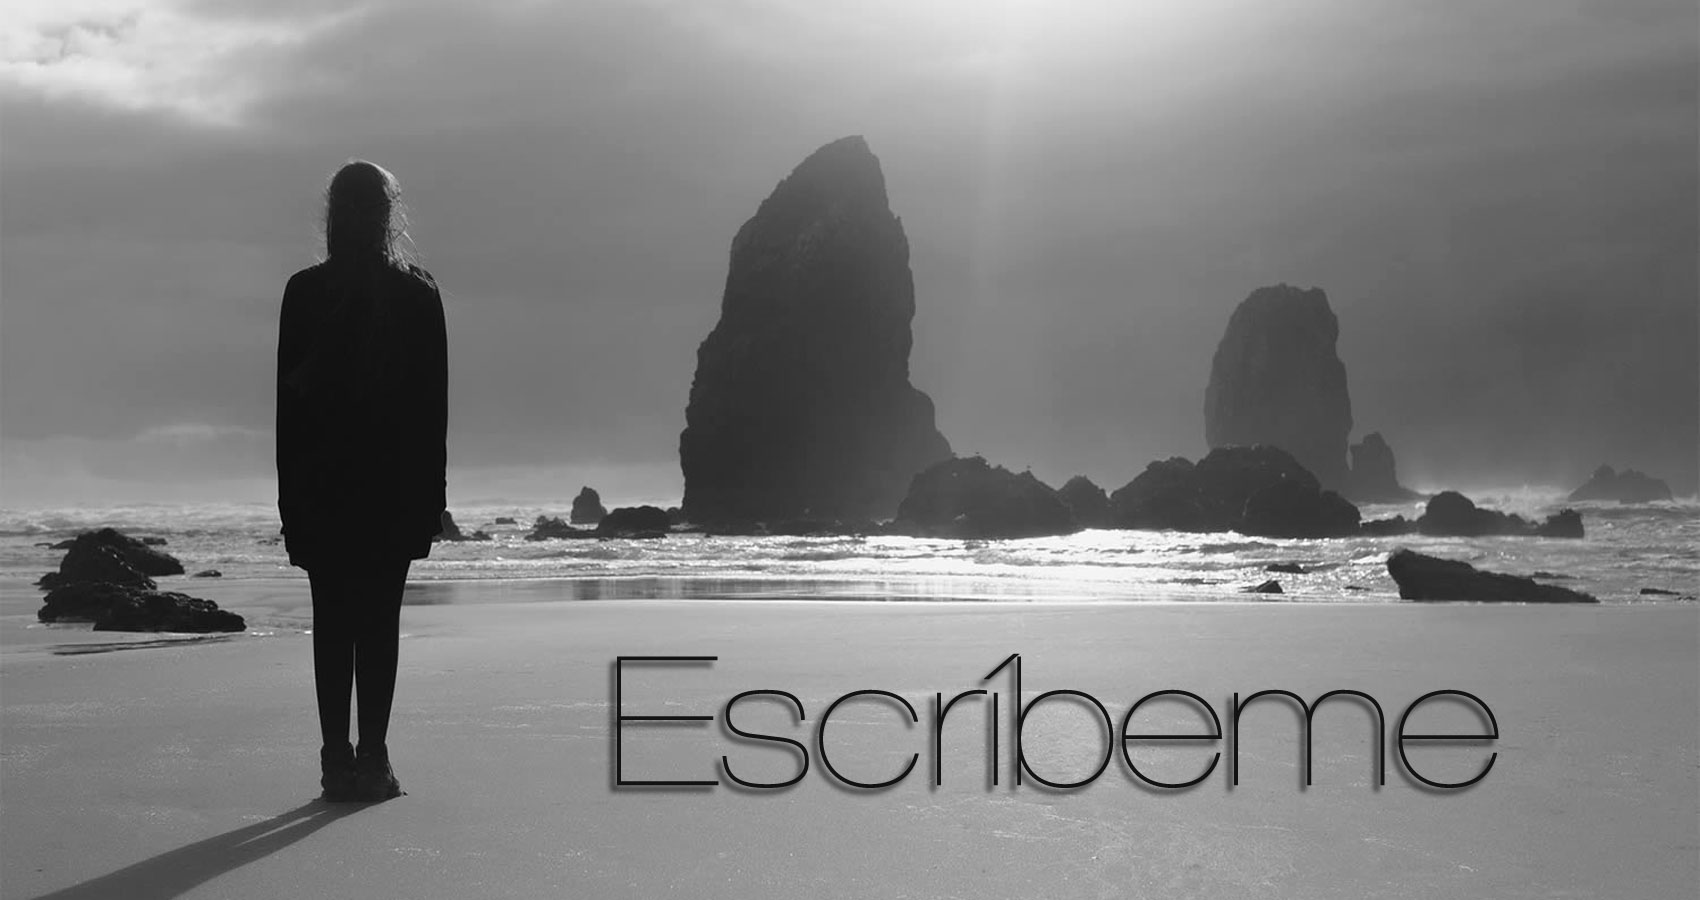 Escribeme written by José A Gómez at Spillwords.com